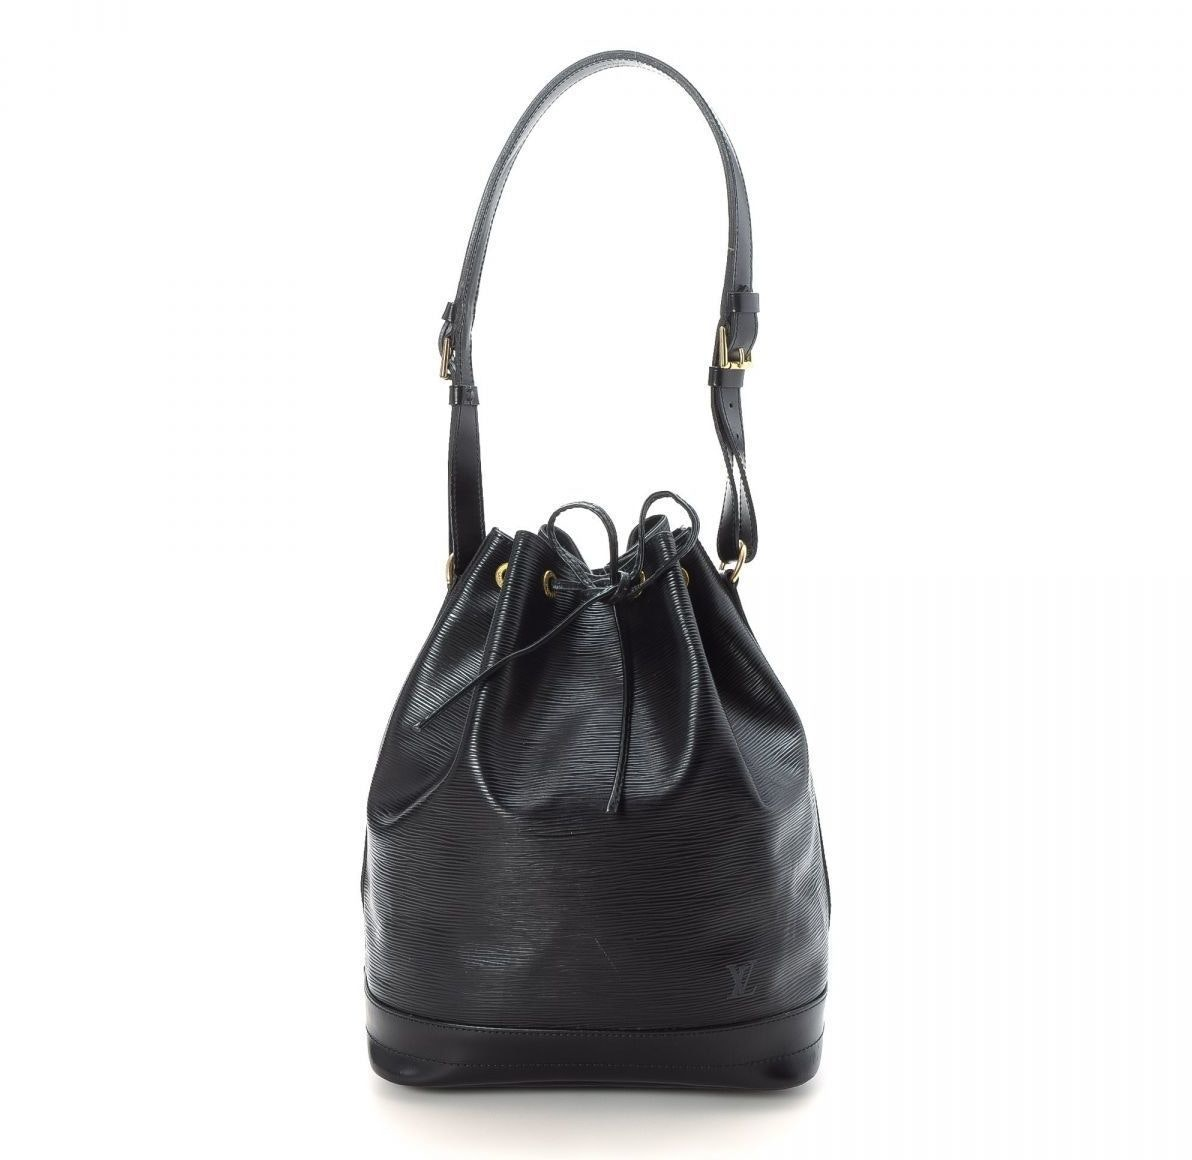 Louis Vuitton Noe Epi Large Black